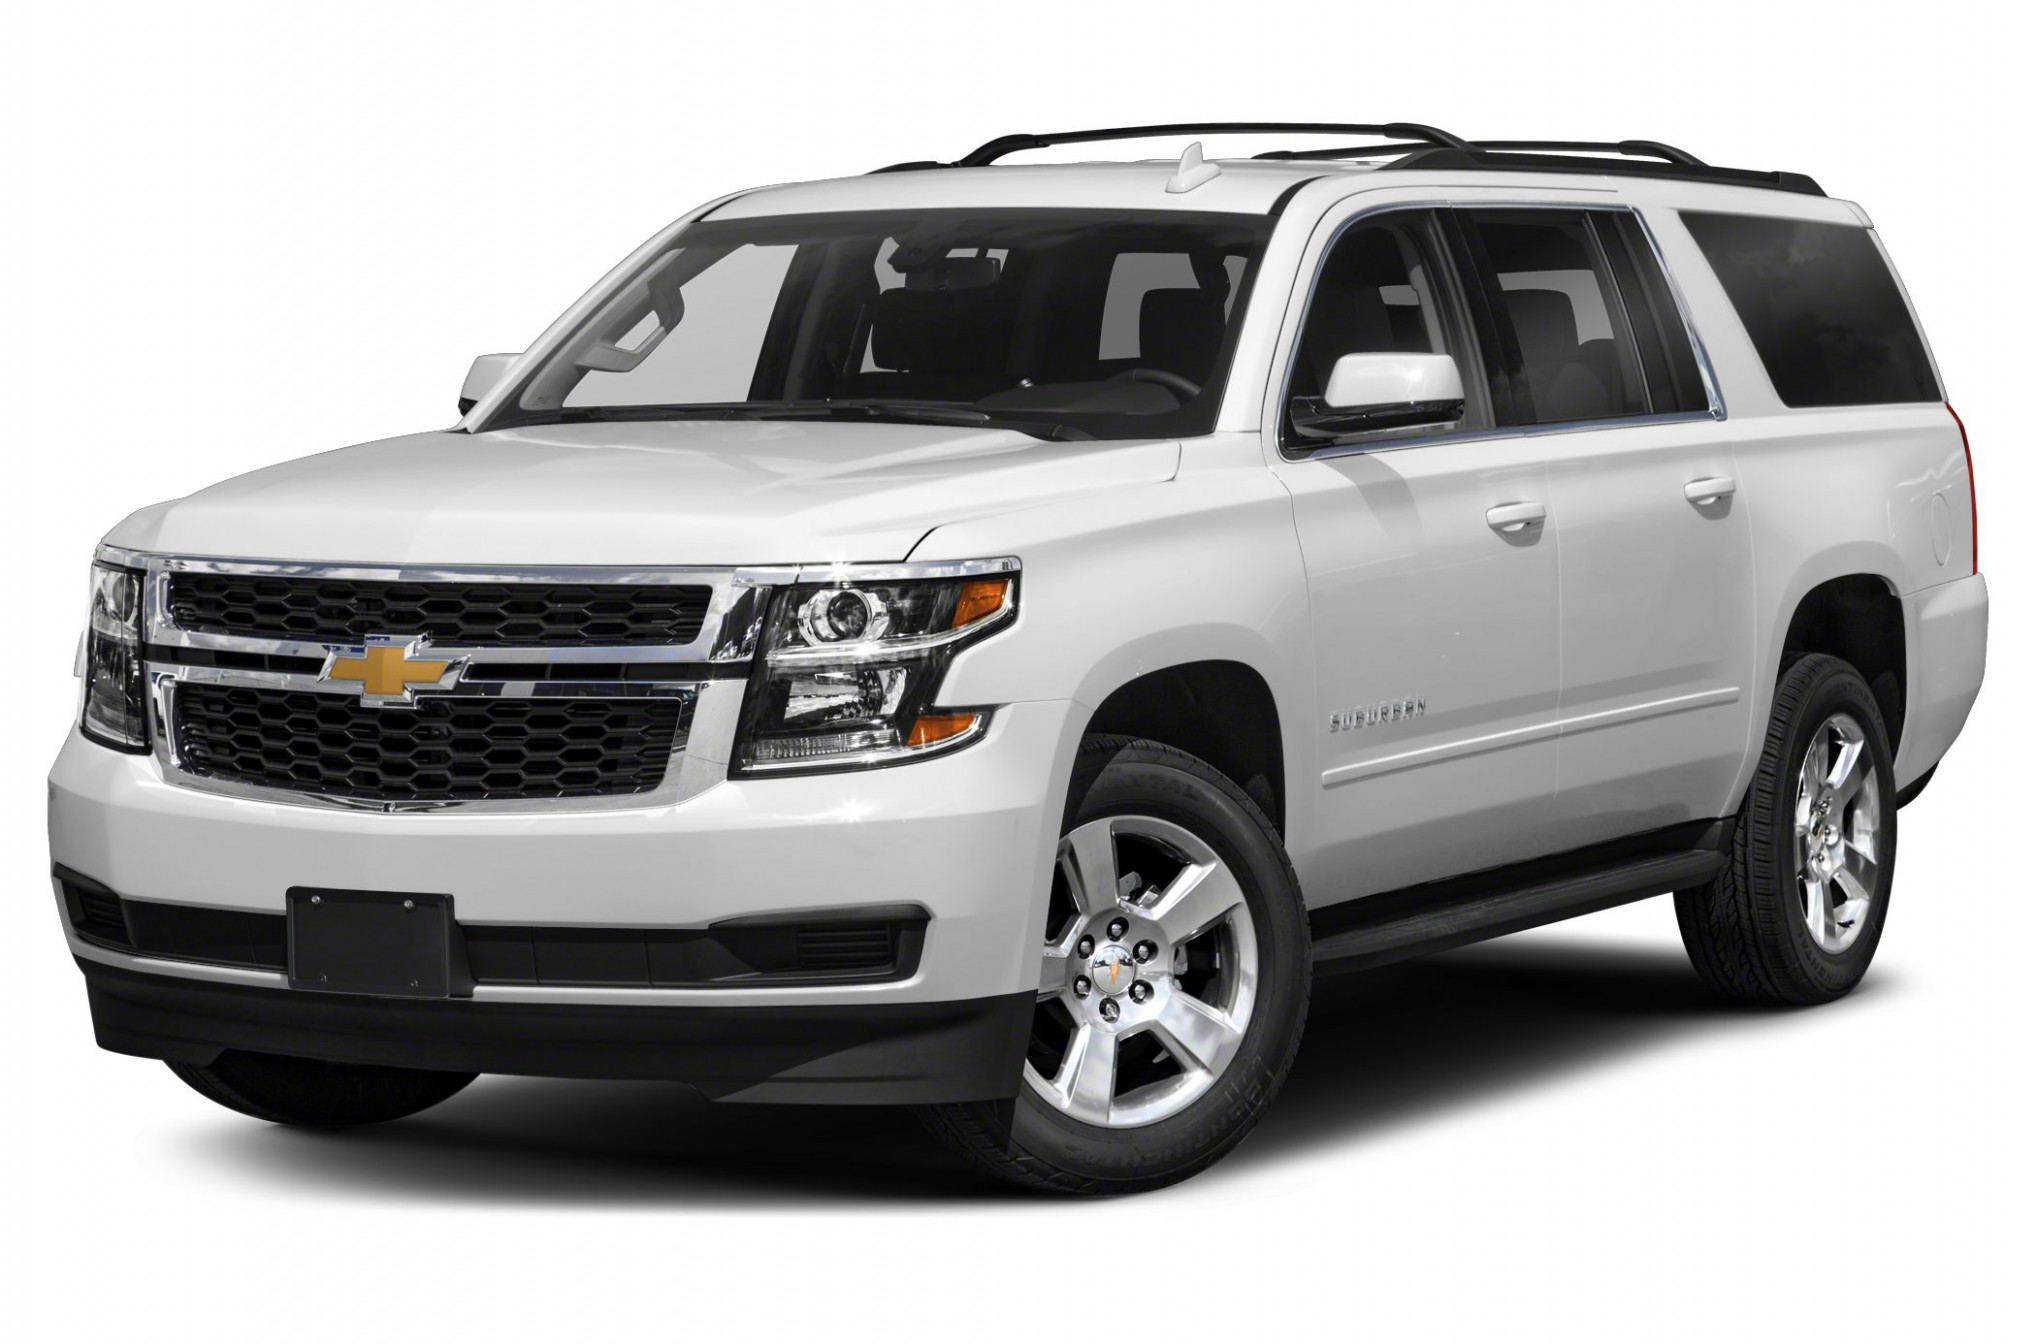 11 Chevrolet Suburban Reviews, Specs, Photos - 2020 chevrolet suburban xlt